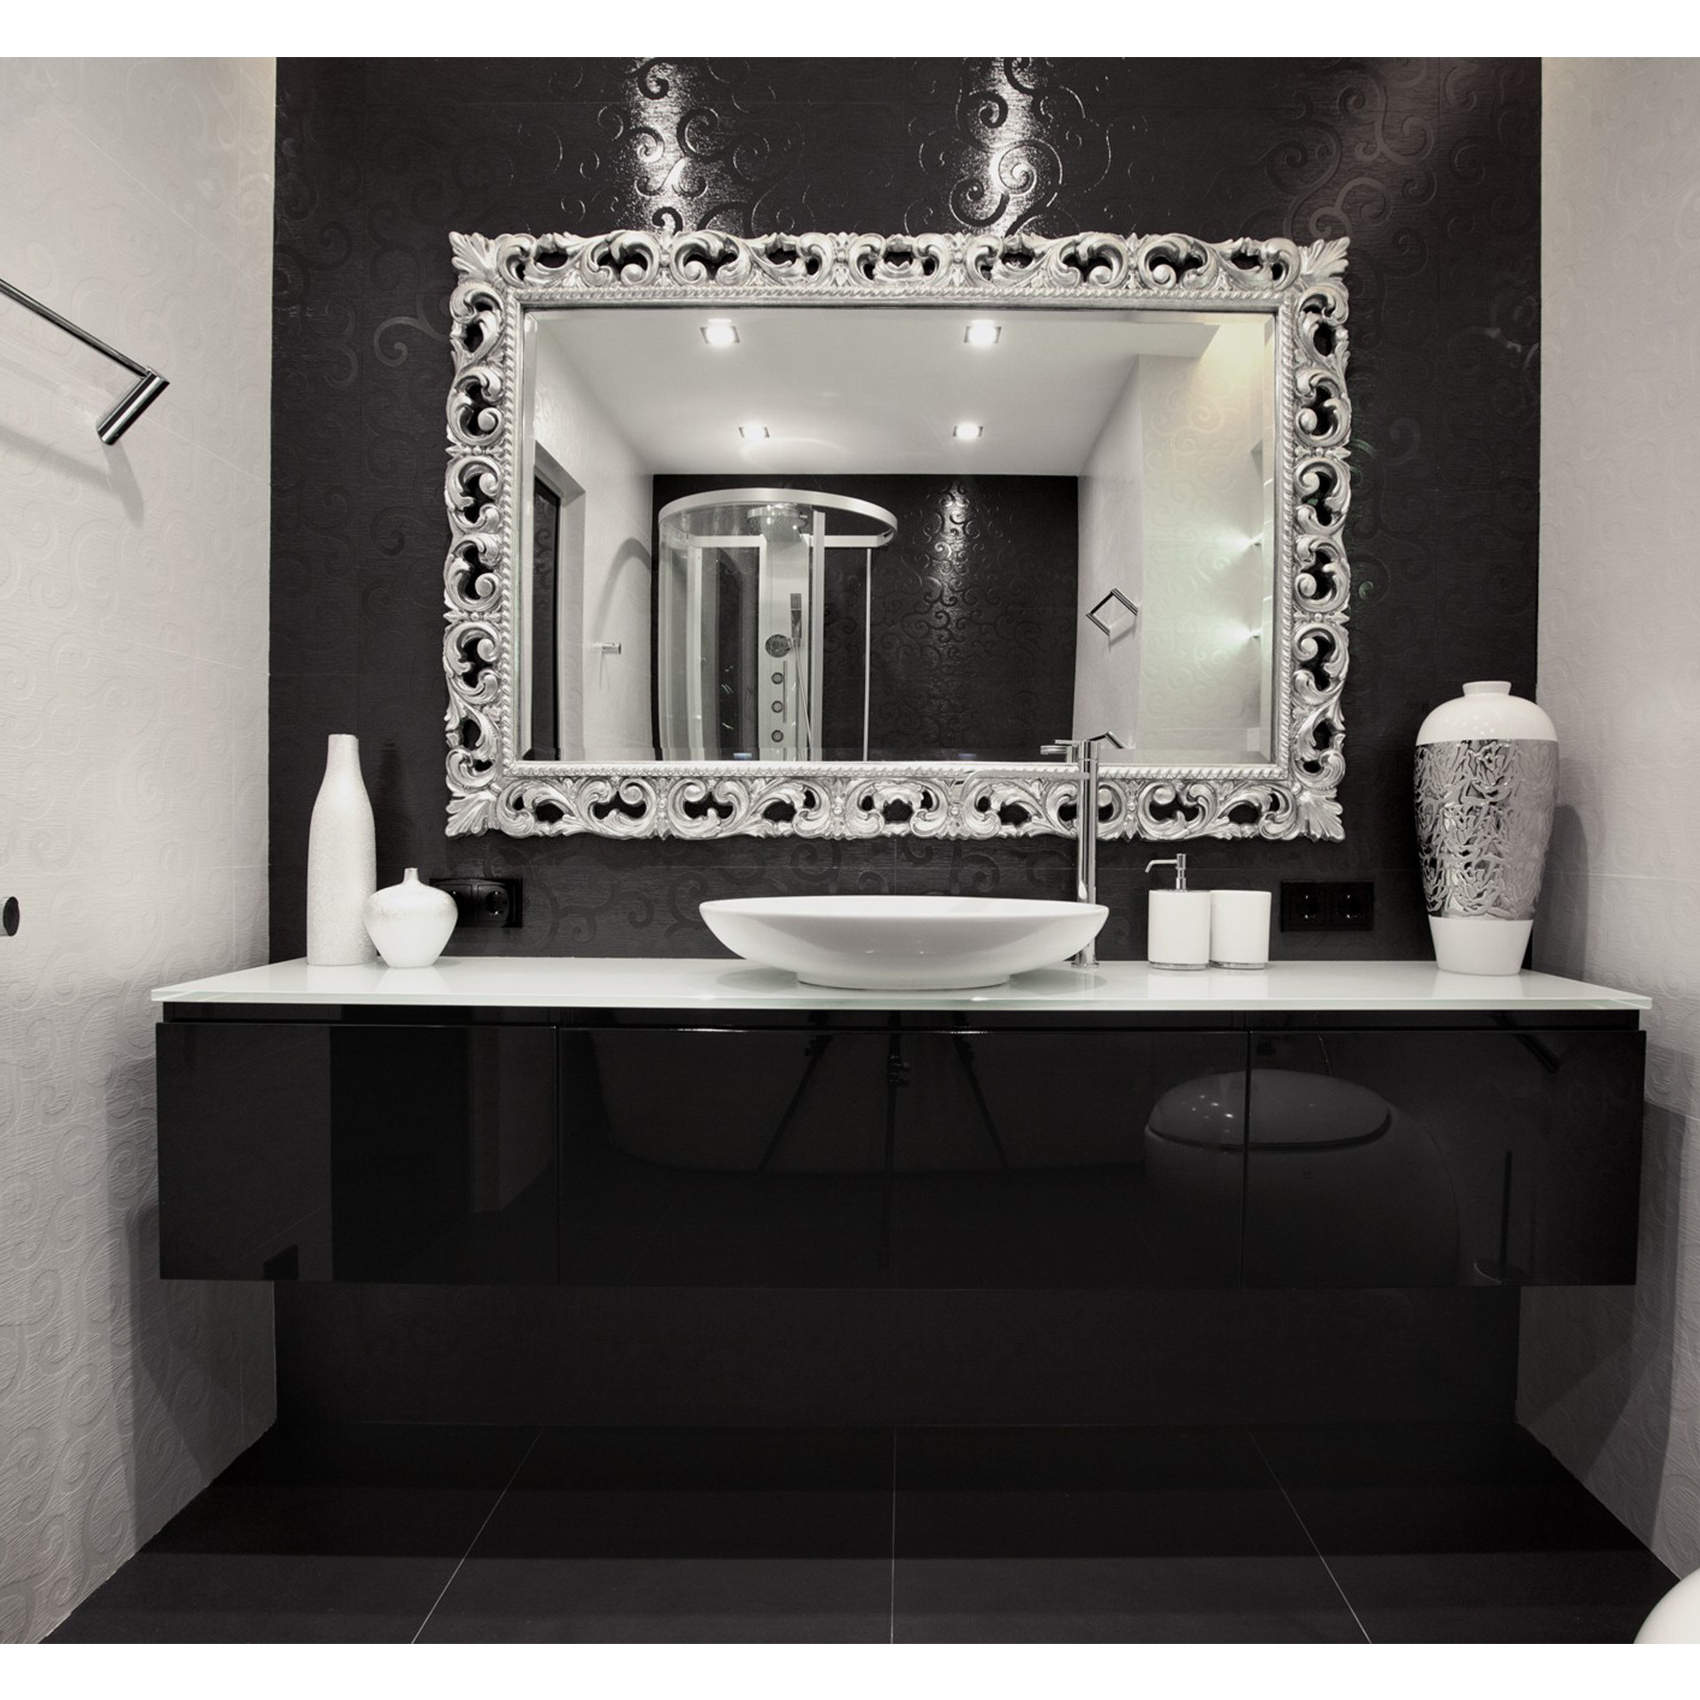 Fancy Bathroom Wall Mirrors For 2019 34 Ingenious Fancy Bathroom Toilet Privacy Options That Will Make (View 4 of 20)